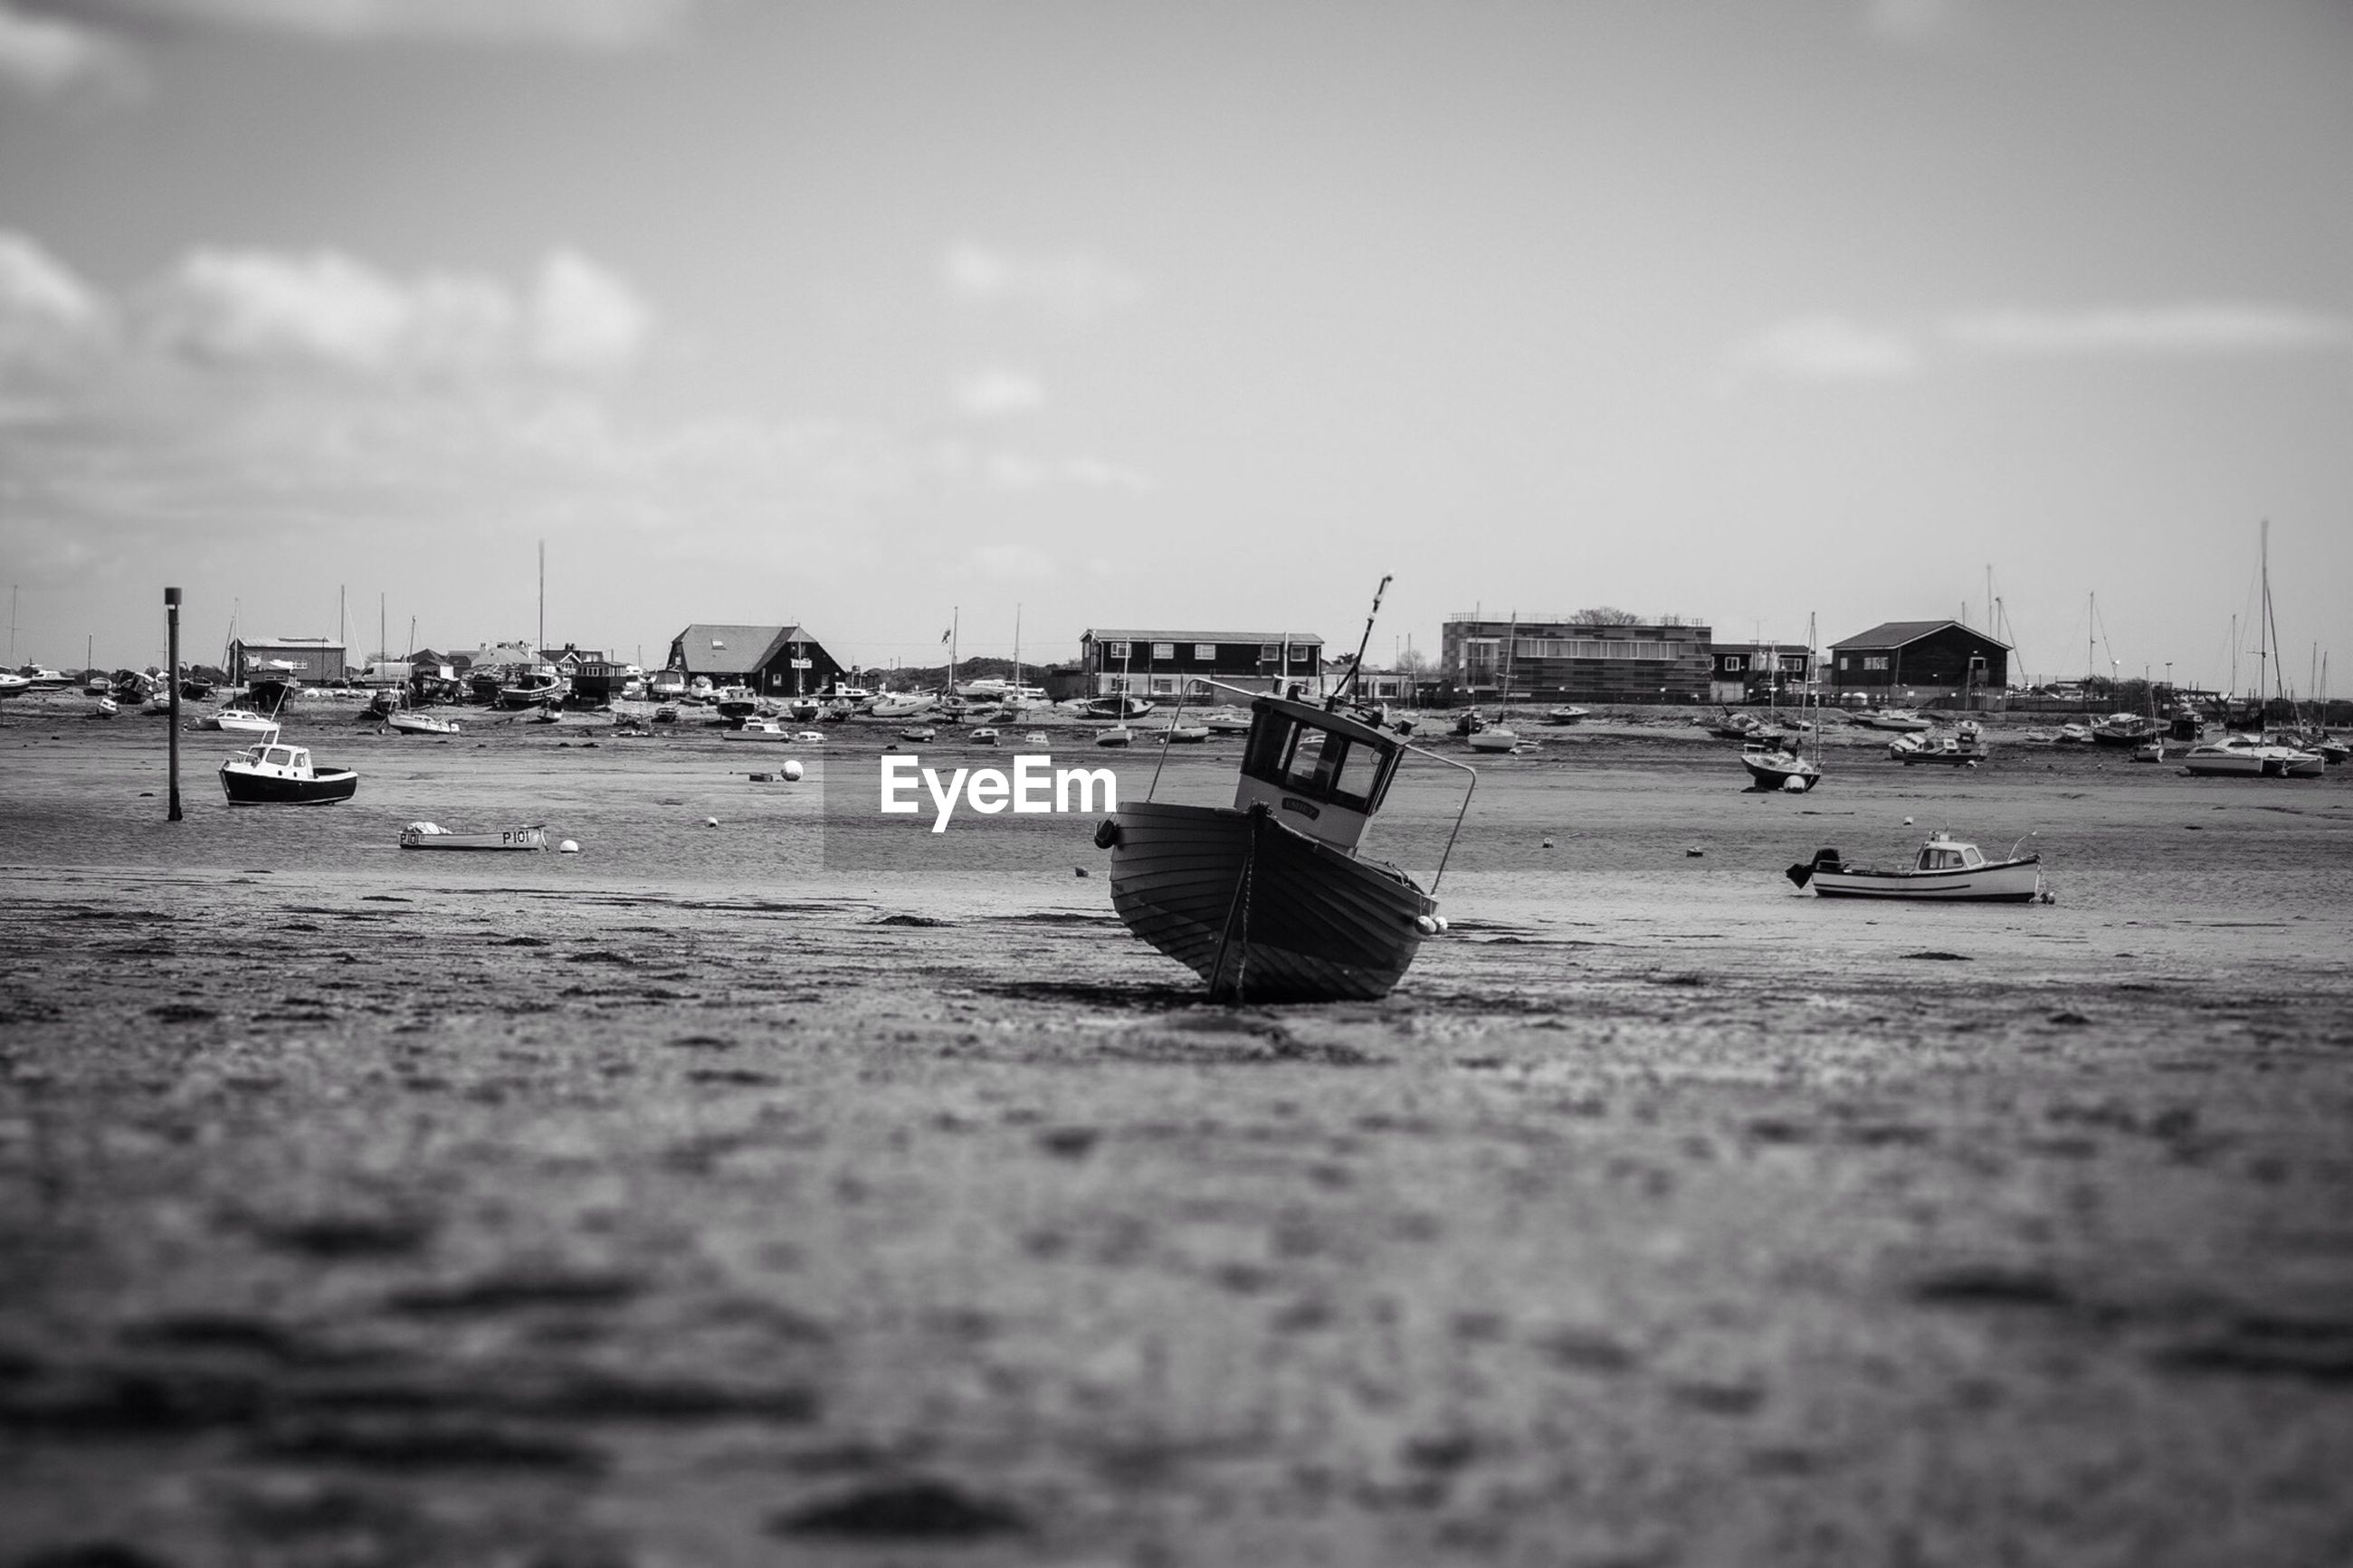 View of boats on shore against the sky